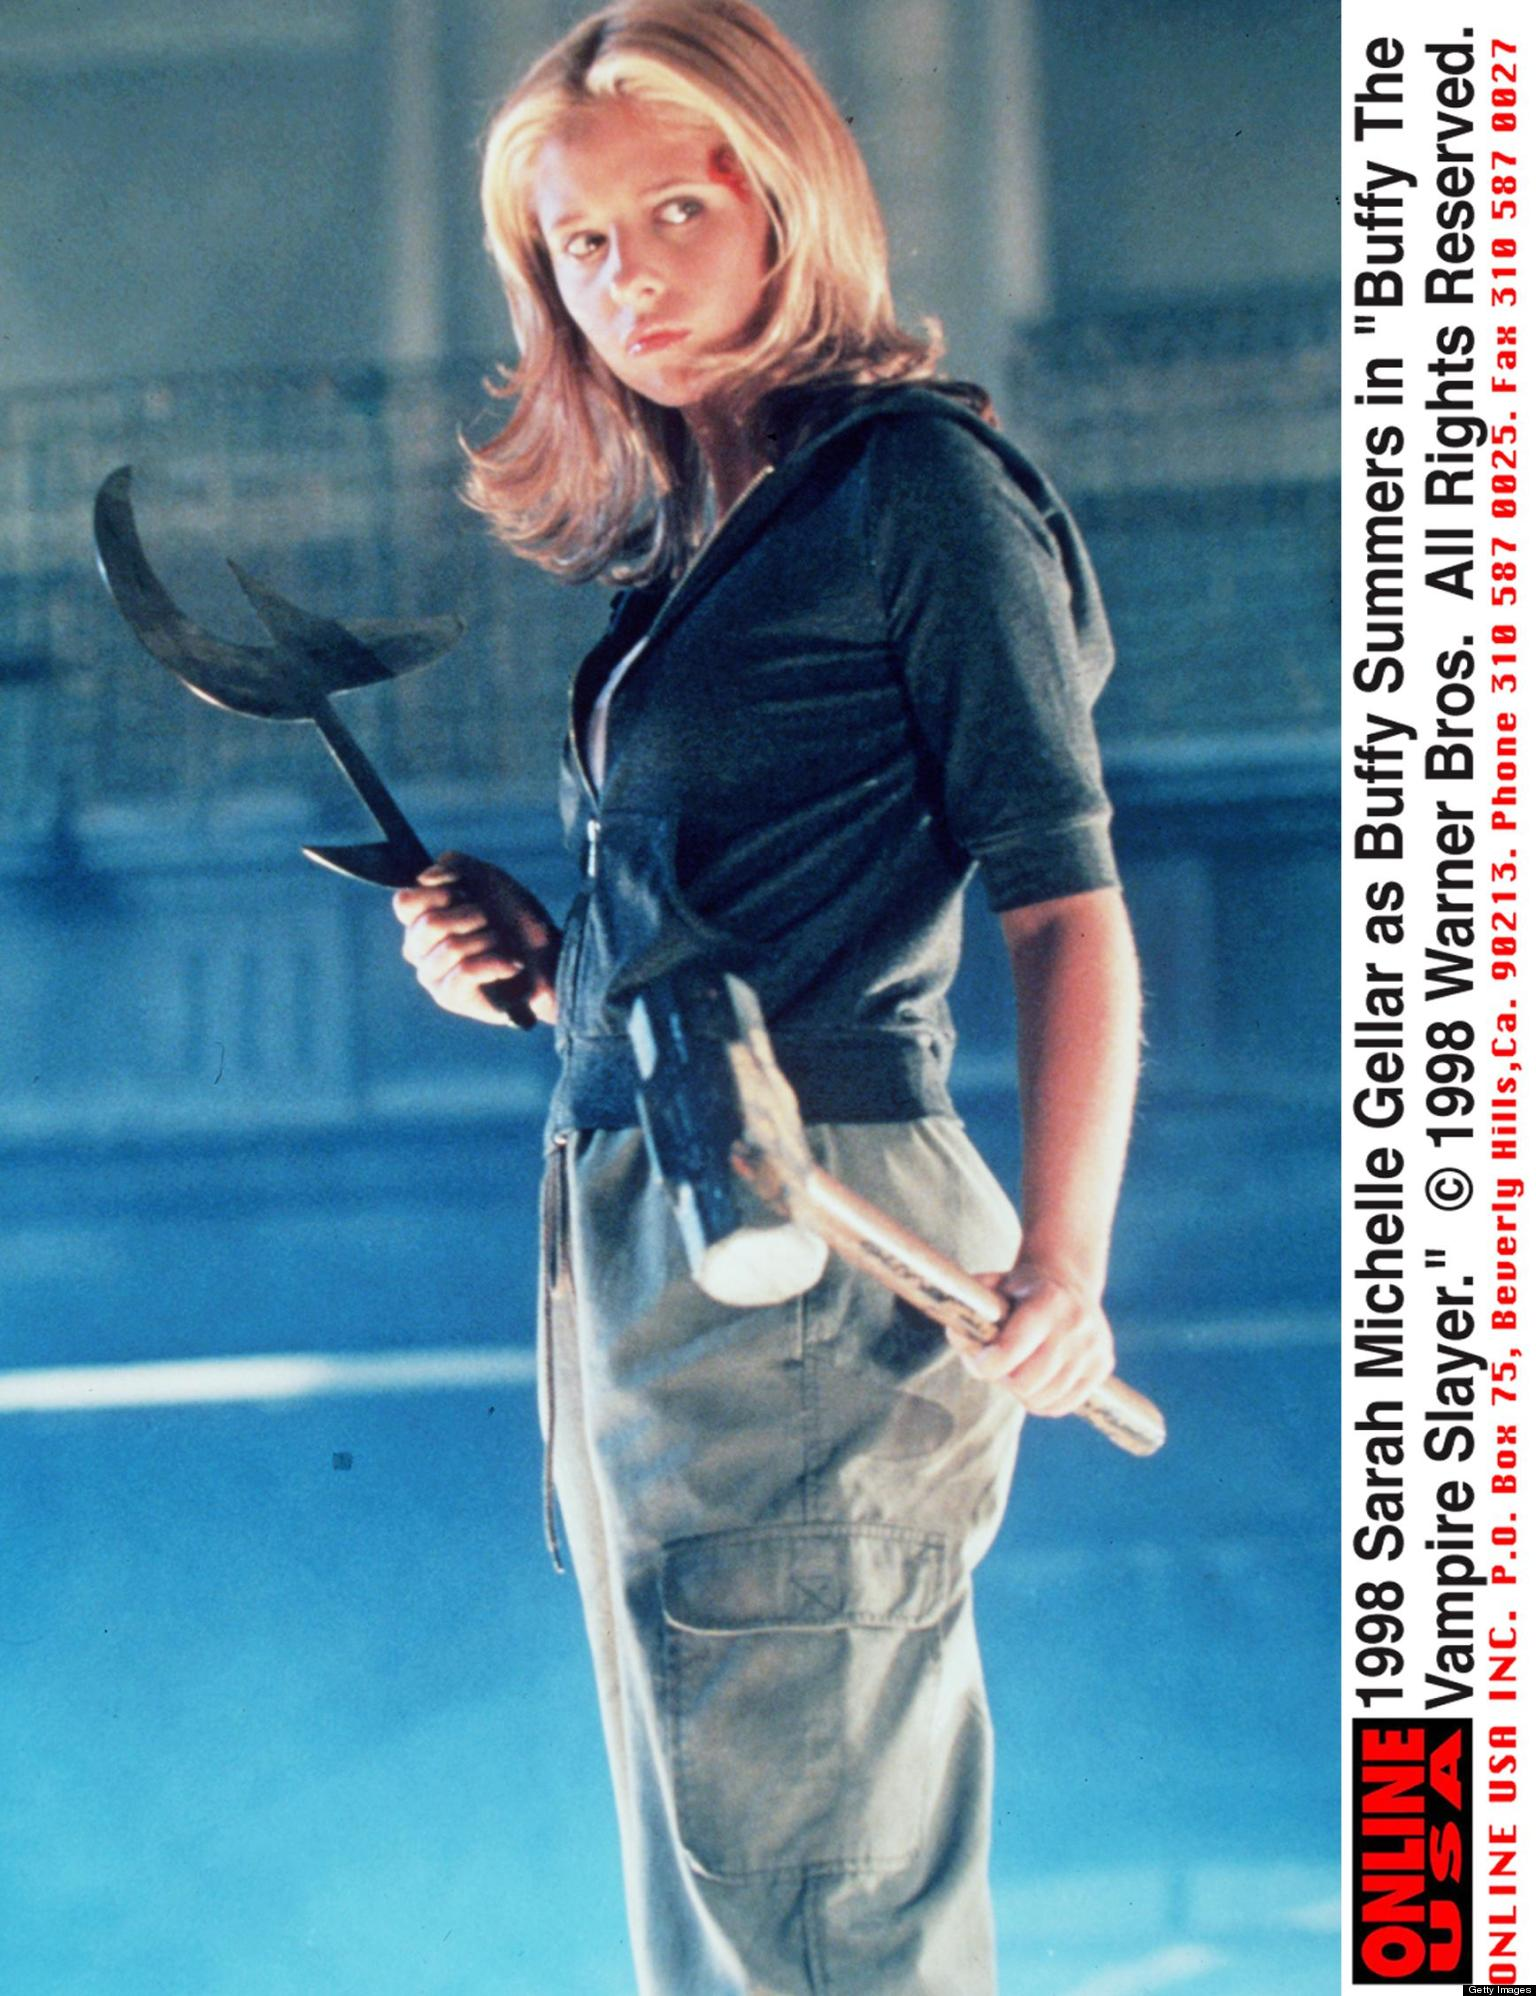 She 'Cant' Be Produer' Of 'Buffy'